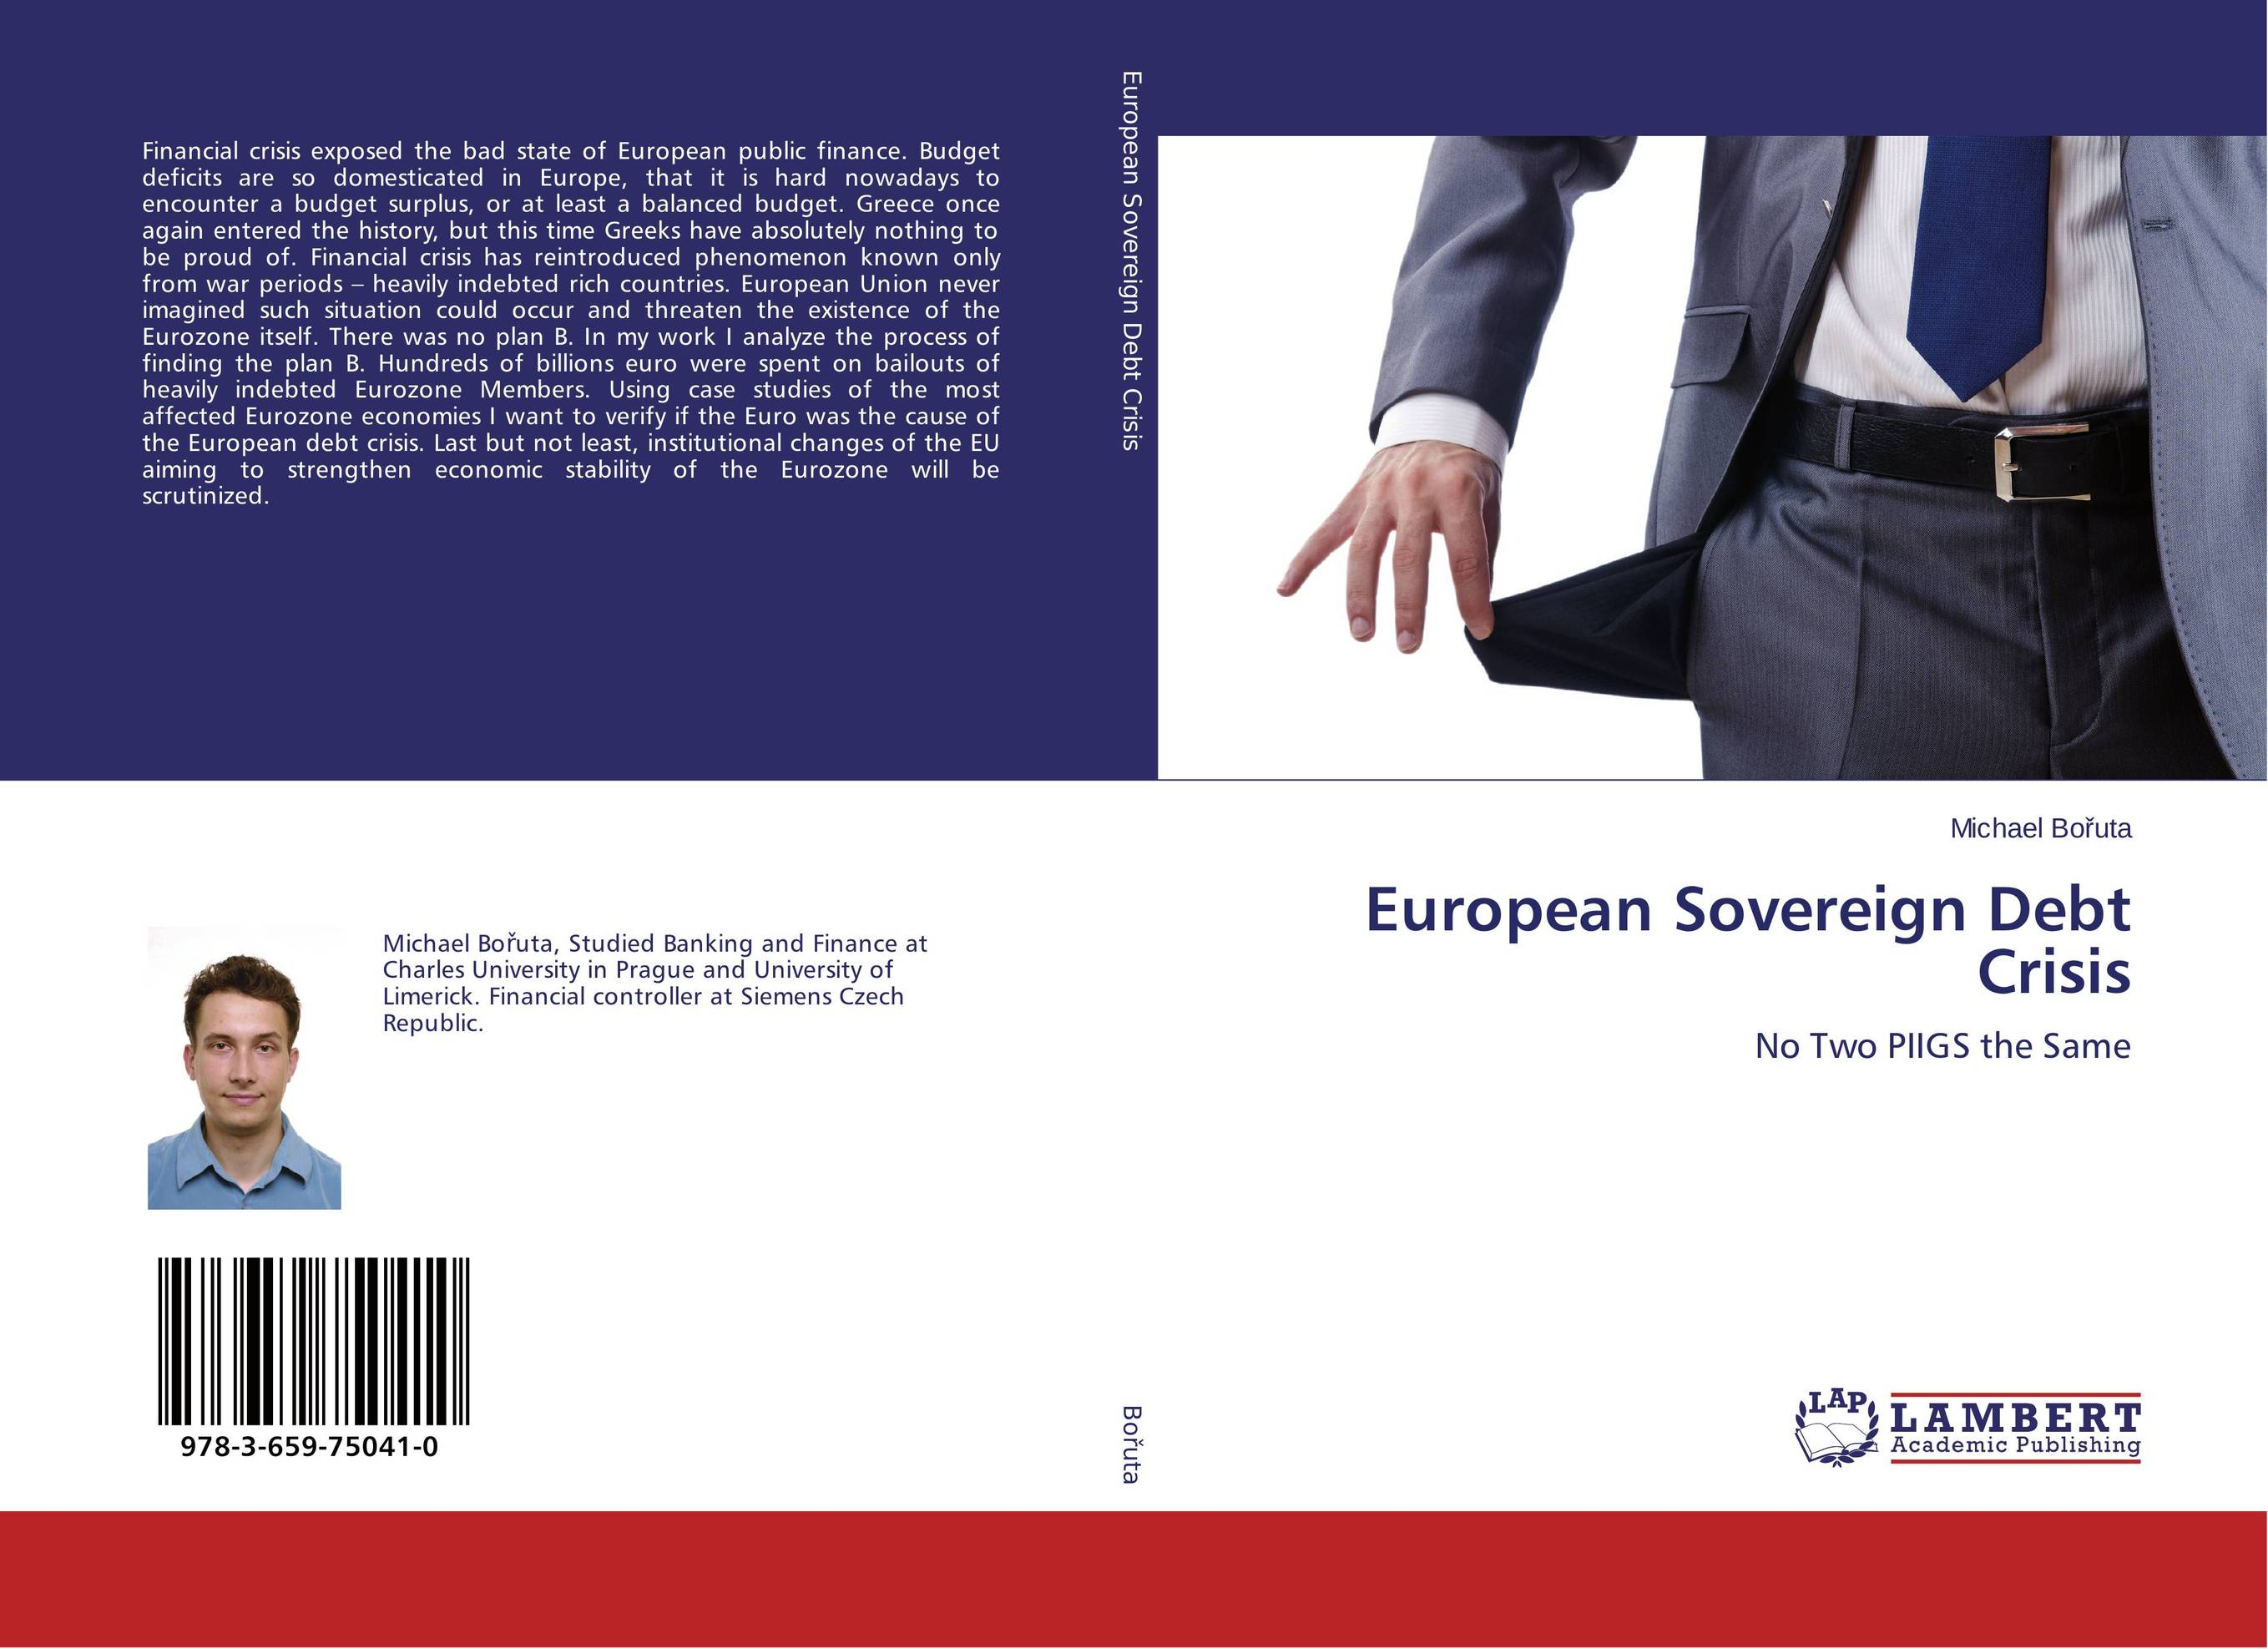 european sovereign debt crisis economics essay Headquarters of the european central bank a new financial crisis is brewing in europe, one that will prove as devastating as the last economic crisis.